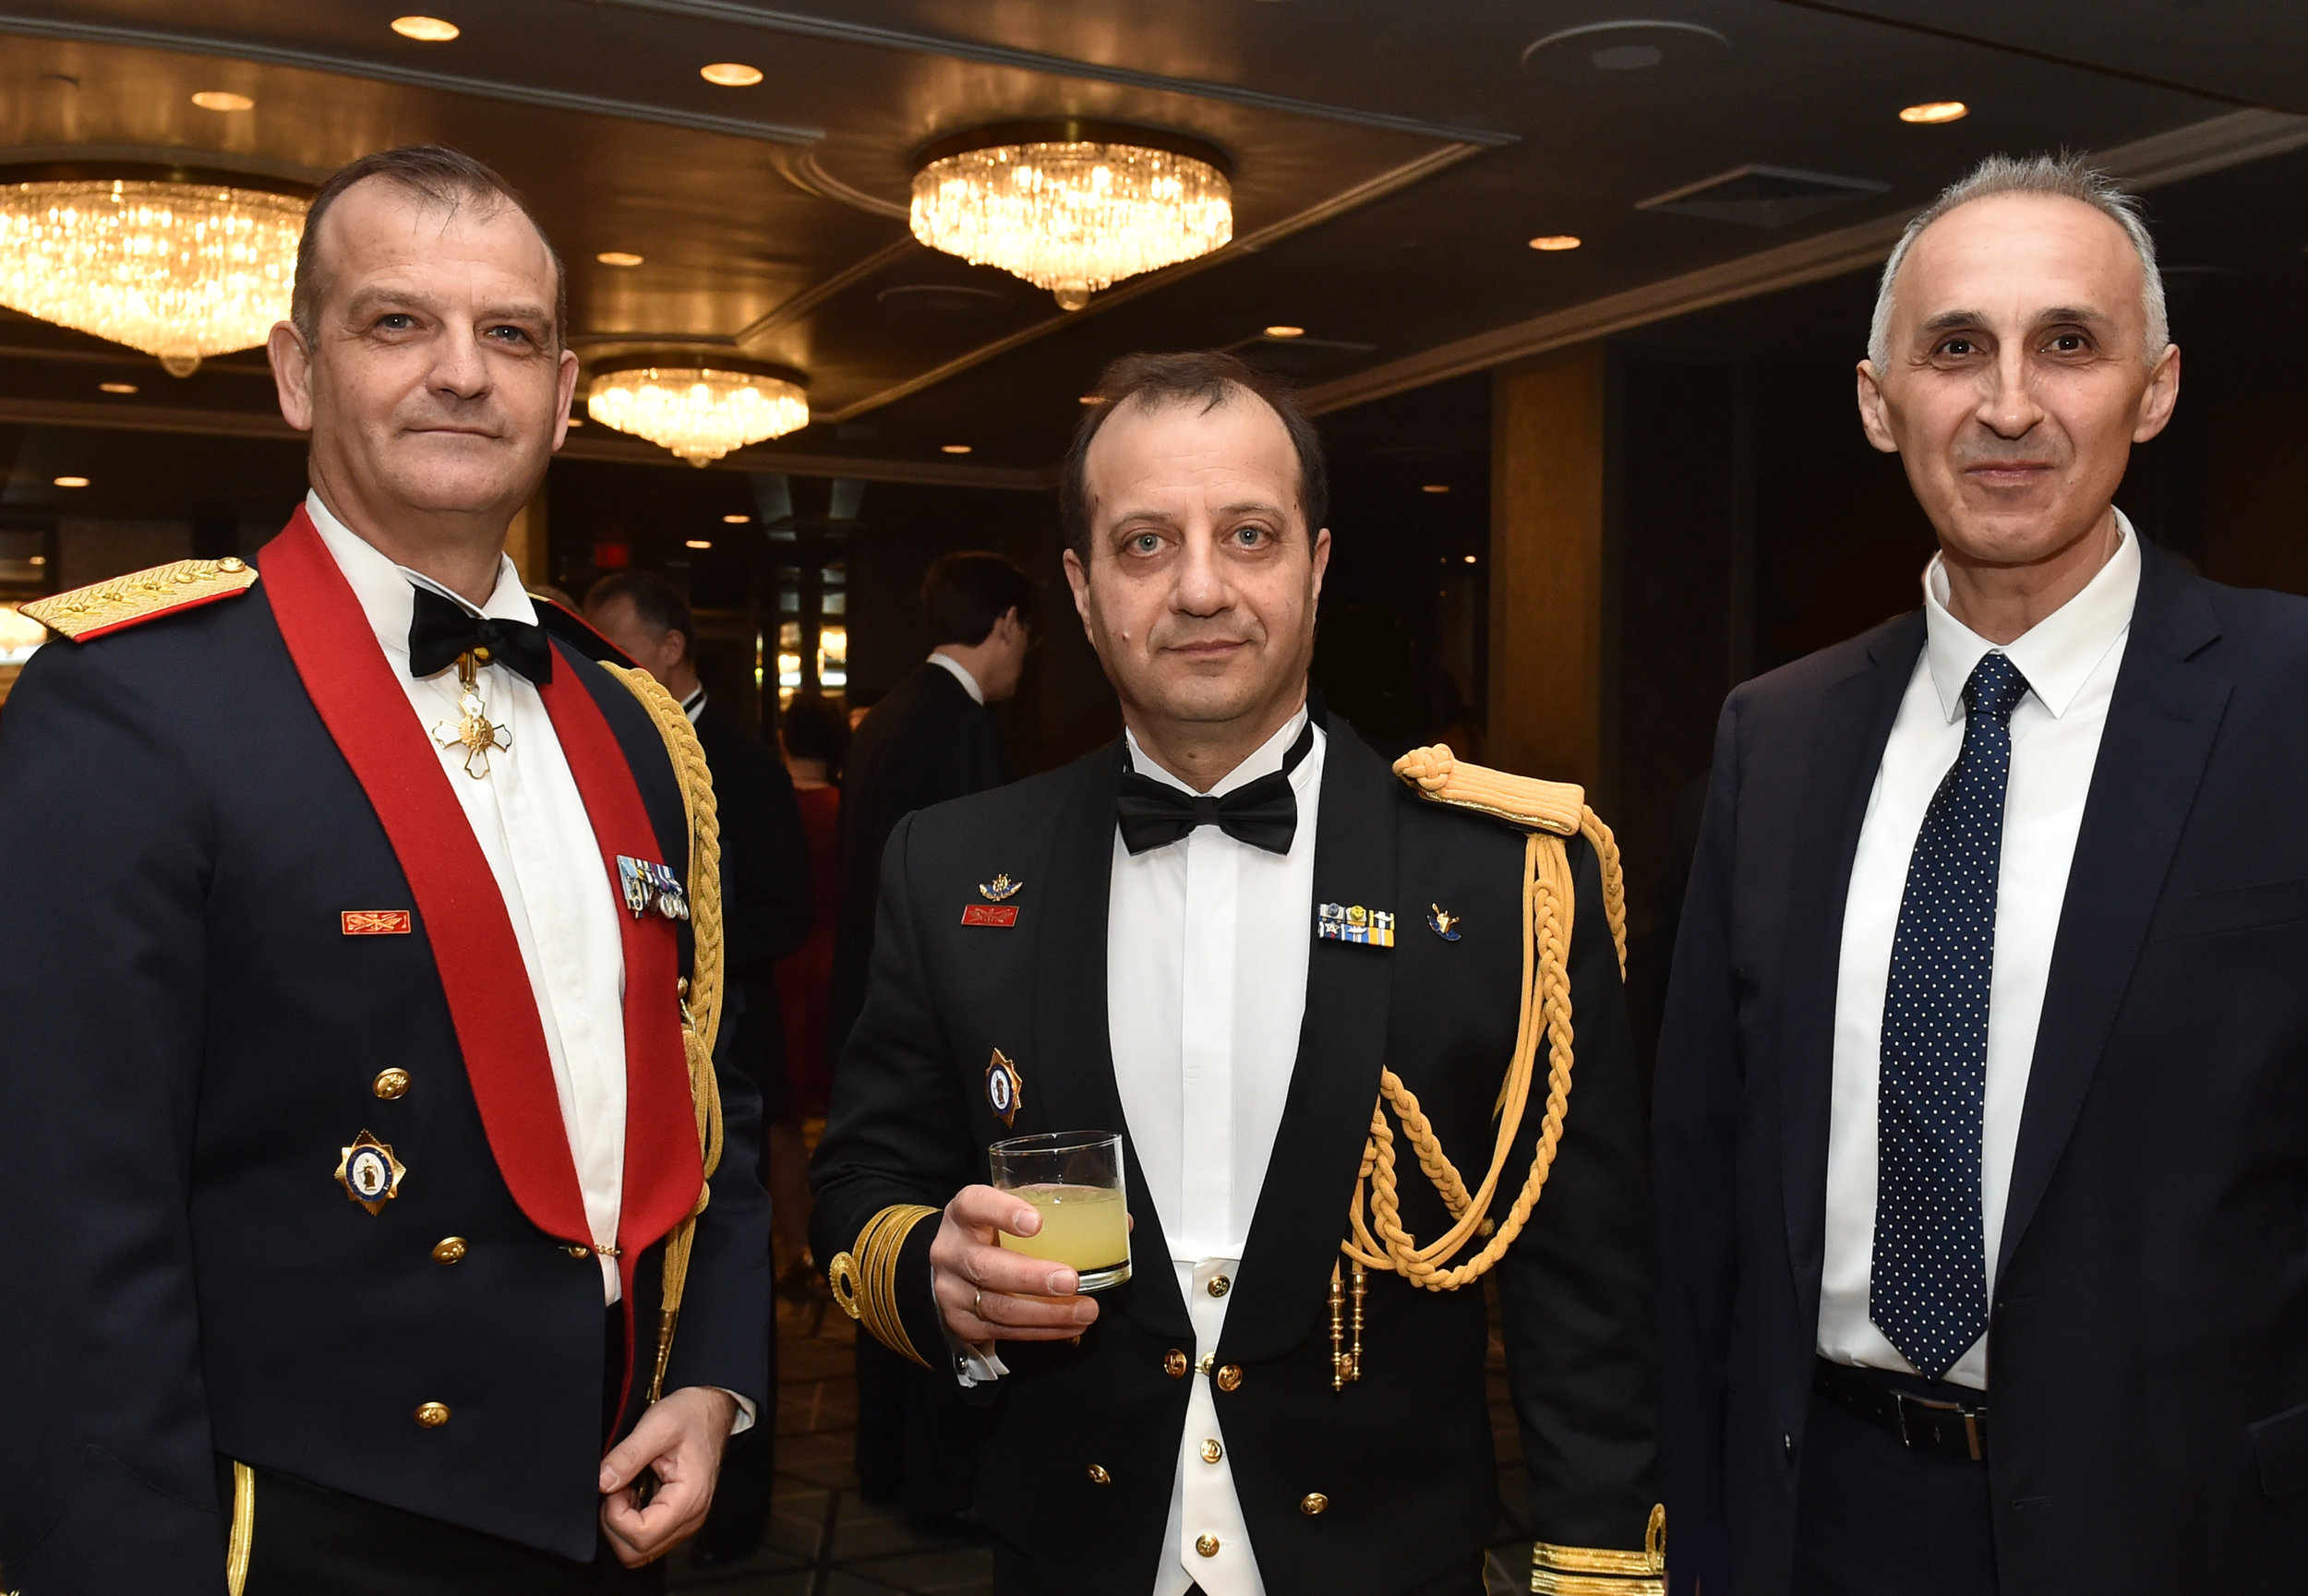 (L-R) Colonel Panagiotis Kavidopoulos, Defense Attache, Greek Embassy to the U.S.; Captain Charalampos Pegklidis, Naval Attache, Greek Embassy to the U.S.; and unidentified guest.